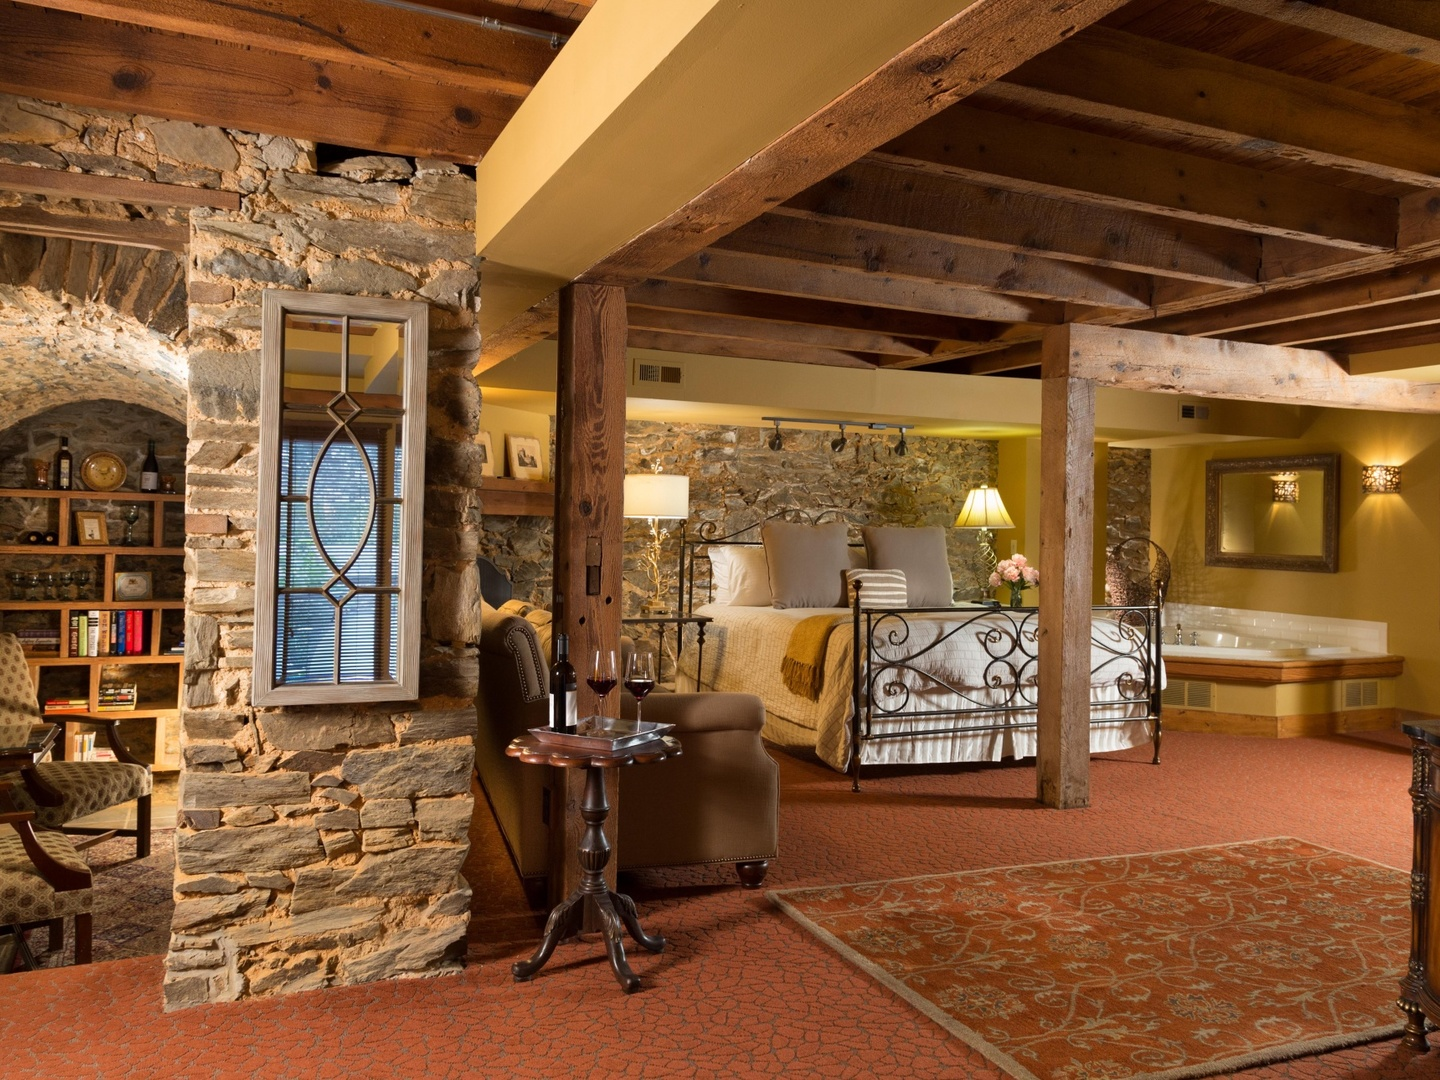 A room filled with furniture and a fireplace at The Inn at Leola Village.